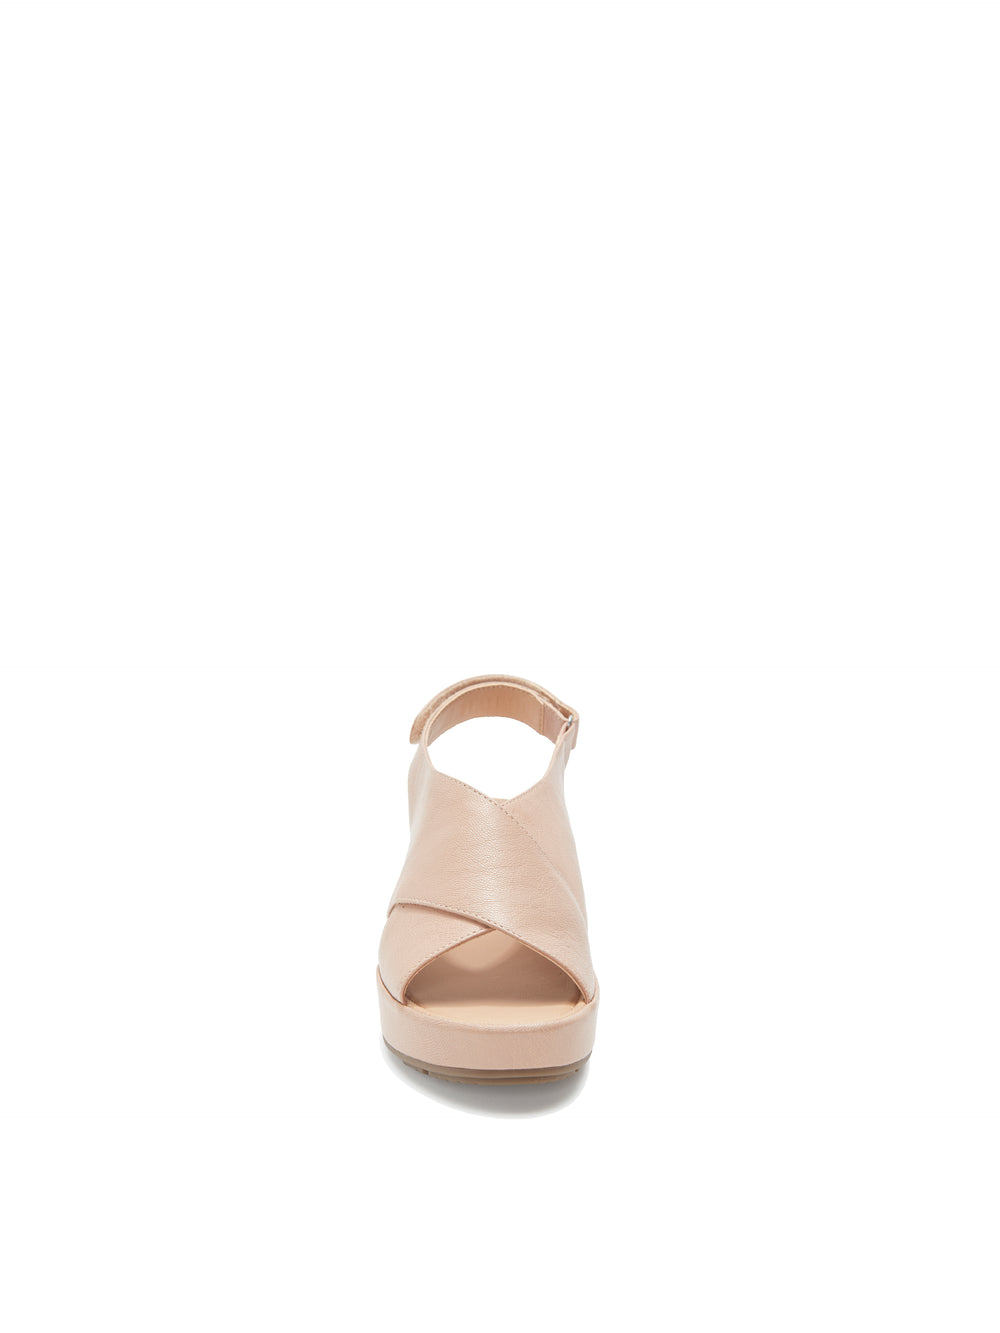 8d1d97a728 Arena Nude Leather   Peep Toe Sandals For Women Online – Me Too Shoes    Free Shipping